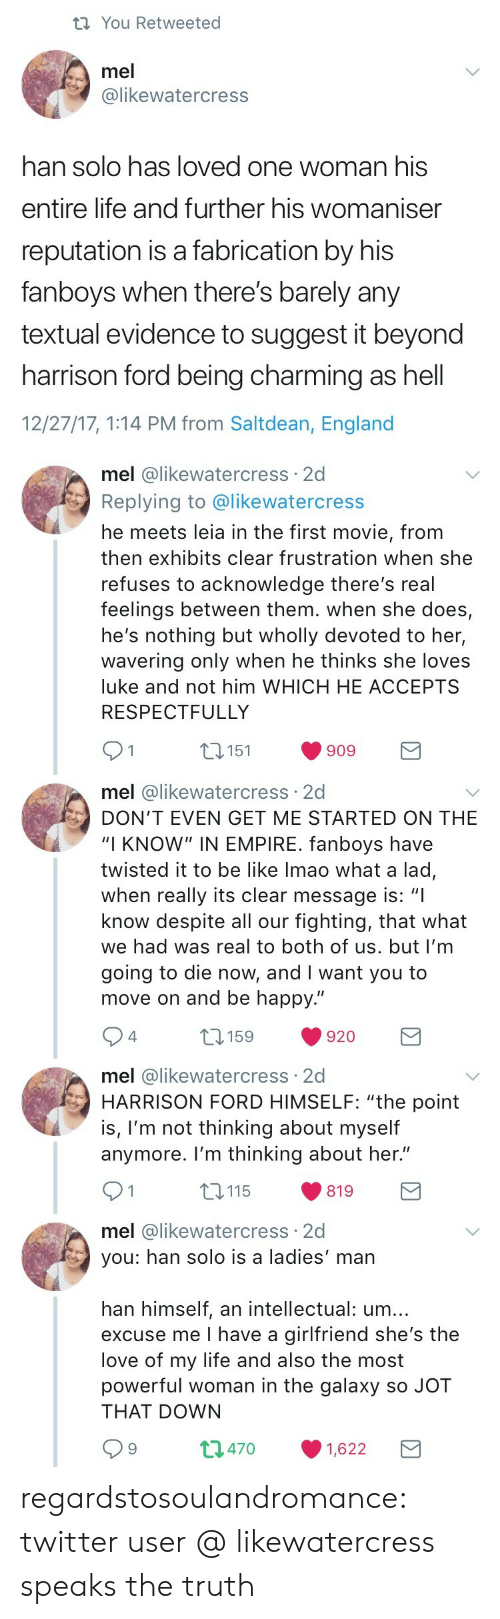 """respectfully: ti You Retweeted  mel  @likewatercress  han solo has loved one woman his  entire life and further his womaniser  reputation is a fabrication by his  fanboys when there's barely any  textual evidence to suggest it beyond  harrison ford being charming as hell  12/27/17, 1:14 PM from Saltdean, England   mel @likewatercress 2d  Replying to @likewatercress  he meets leia in the first movie, from  then exhibits clear frustration when she  refuses to acknowledge there's real  feelings between them. when she does,  he's nothing but wholly devoted to her,  wavering only when he thinks she loves  luke and not him WHICH HE ACCEPTS  RESPECTFULLY  1 t151 909 E  mel @likewatercress 2d  DON'T EVEN GET ME STARTED ON THE  """"I KNOW"""" IN EMPIRE. fanboys have  twisted it to be like Imao what a lad,  when really its clear message is: """"I  know despite all our fighting, that what  we had was real to both of us. but I'm  going to die now, and I want you to  move on and be happy.""""  4  920   mel @likewatercress 2d  HARRISON FORD HIMSELF: """"the point  is, l'm not thinking about myself  anymore. I'm thinking about her.""""  91 115  819  mel @likewatercress 2d  you: han solo is a ladies' man  han himself, an intellectual: um...  excuse me I have a girlfriend she's the  love of my life and also the most  powerful woman in the galaxy so JOT  THAT DOWN  t1470 1,622 regardstosoulandromance: twitter user @ likewatercress speaks the truth"""